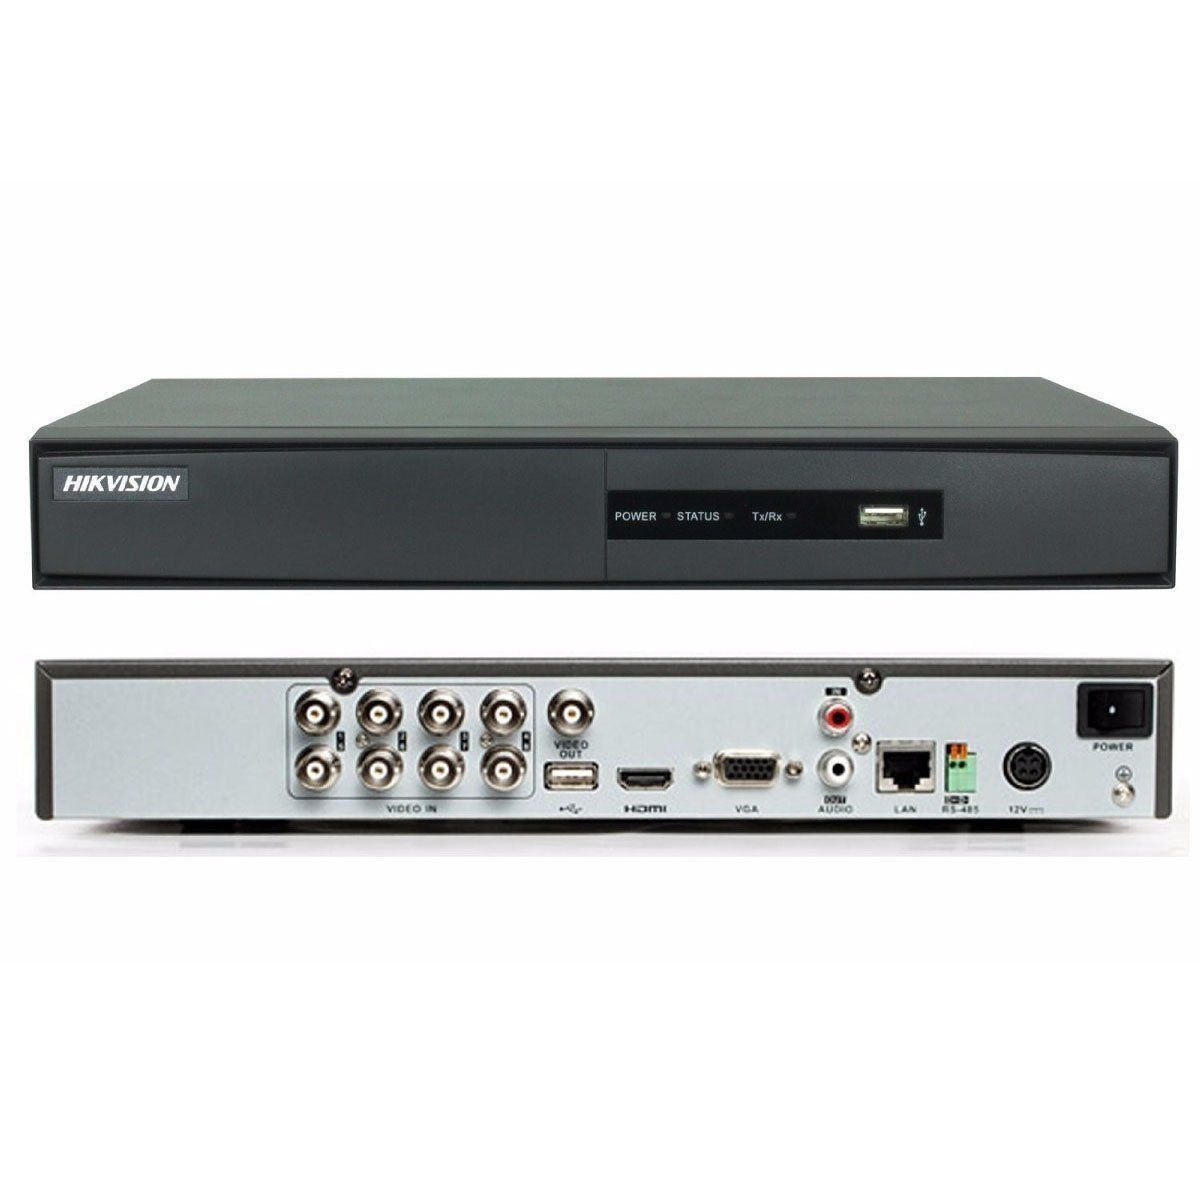 DVR 8 Canais Digital Turbo HD DS-7208HGHI-F1/N 15FPS Hikvision